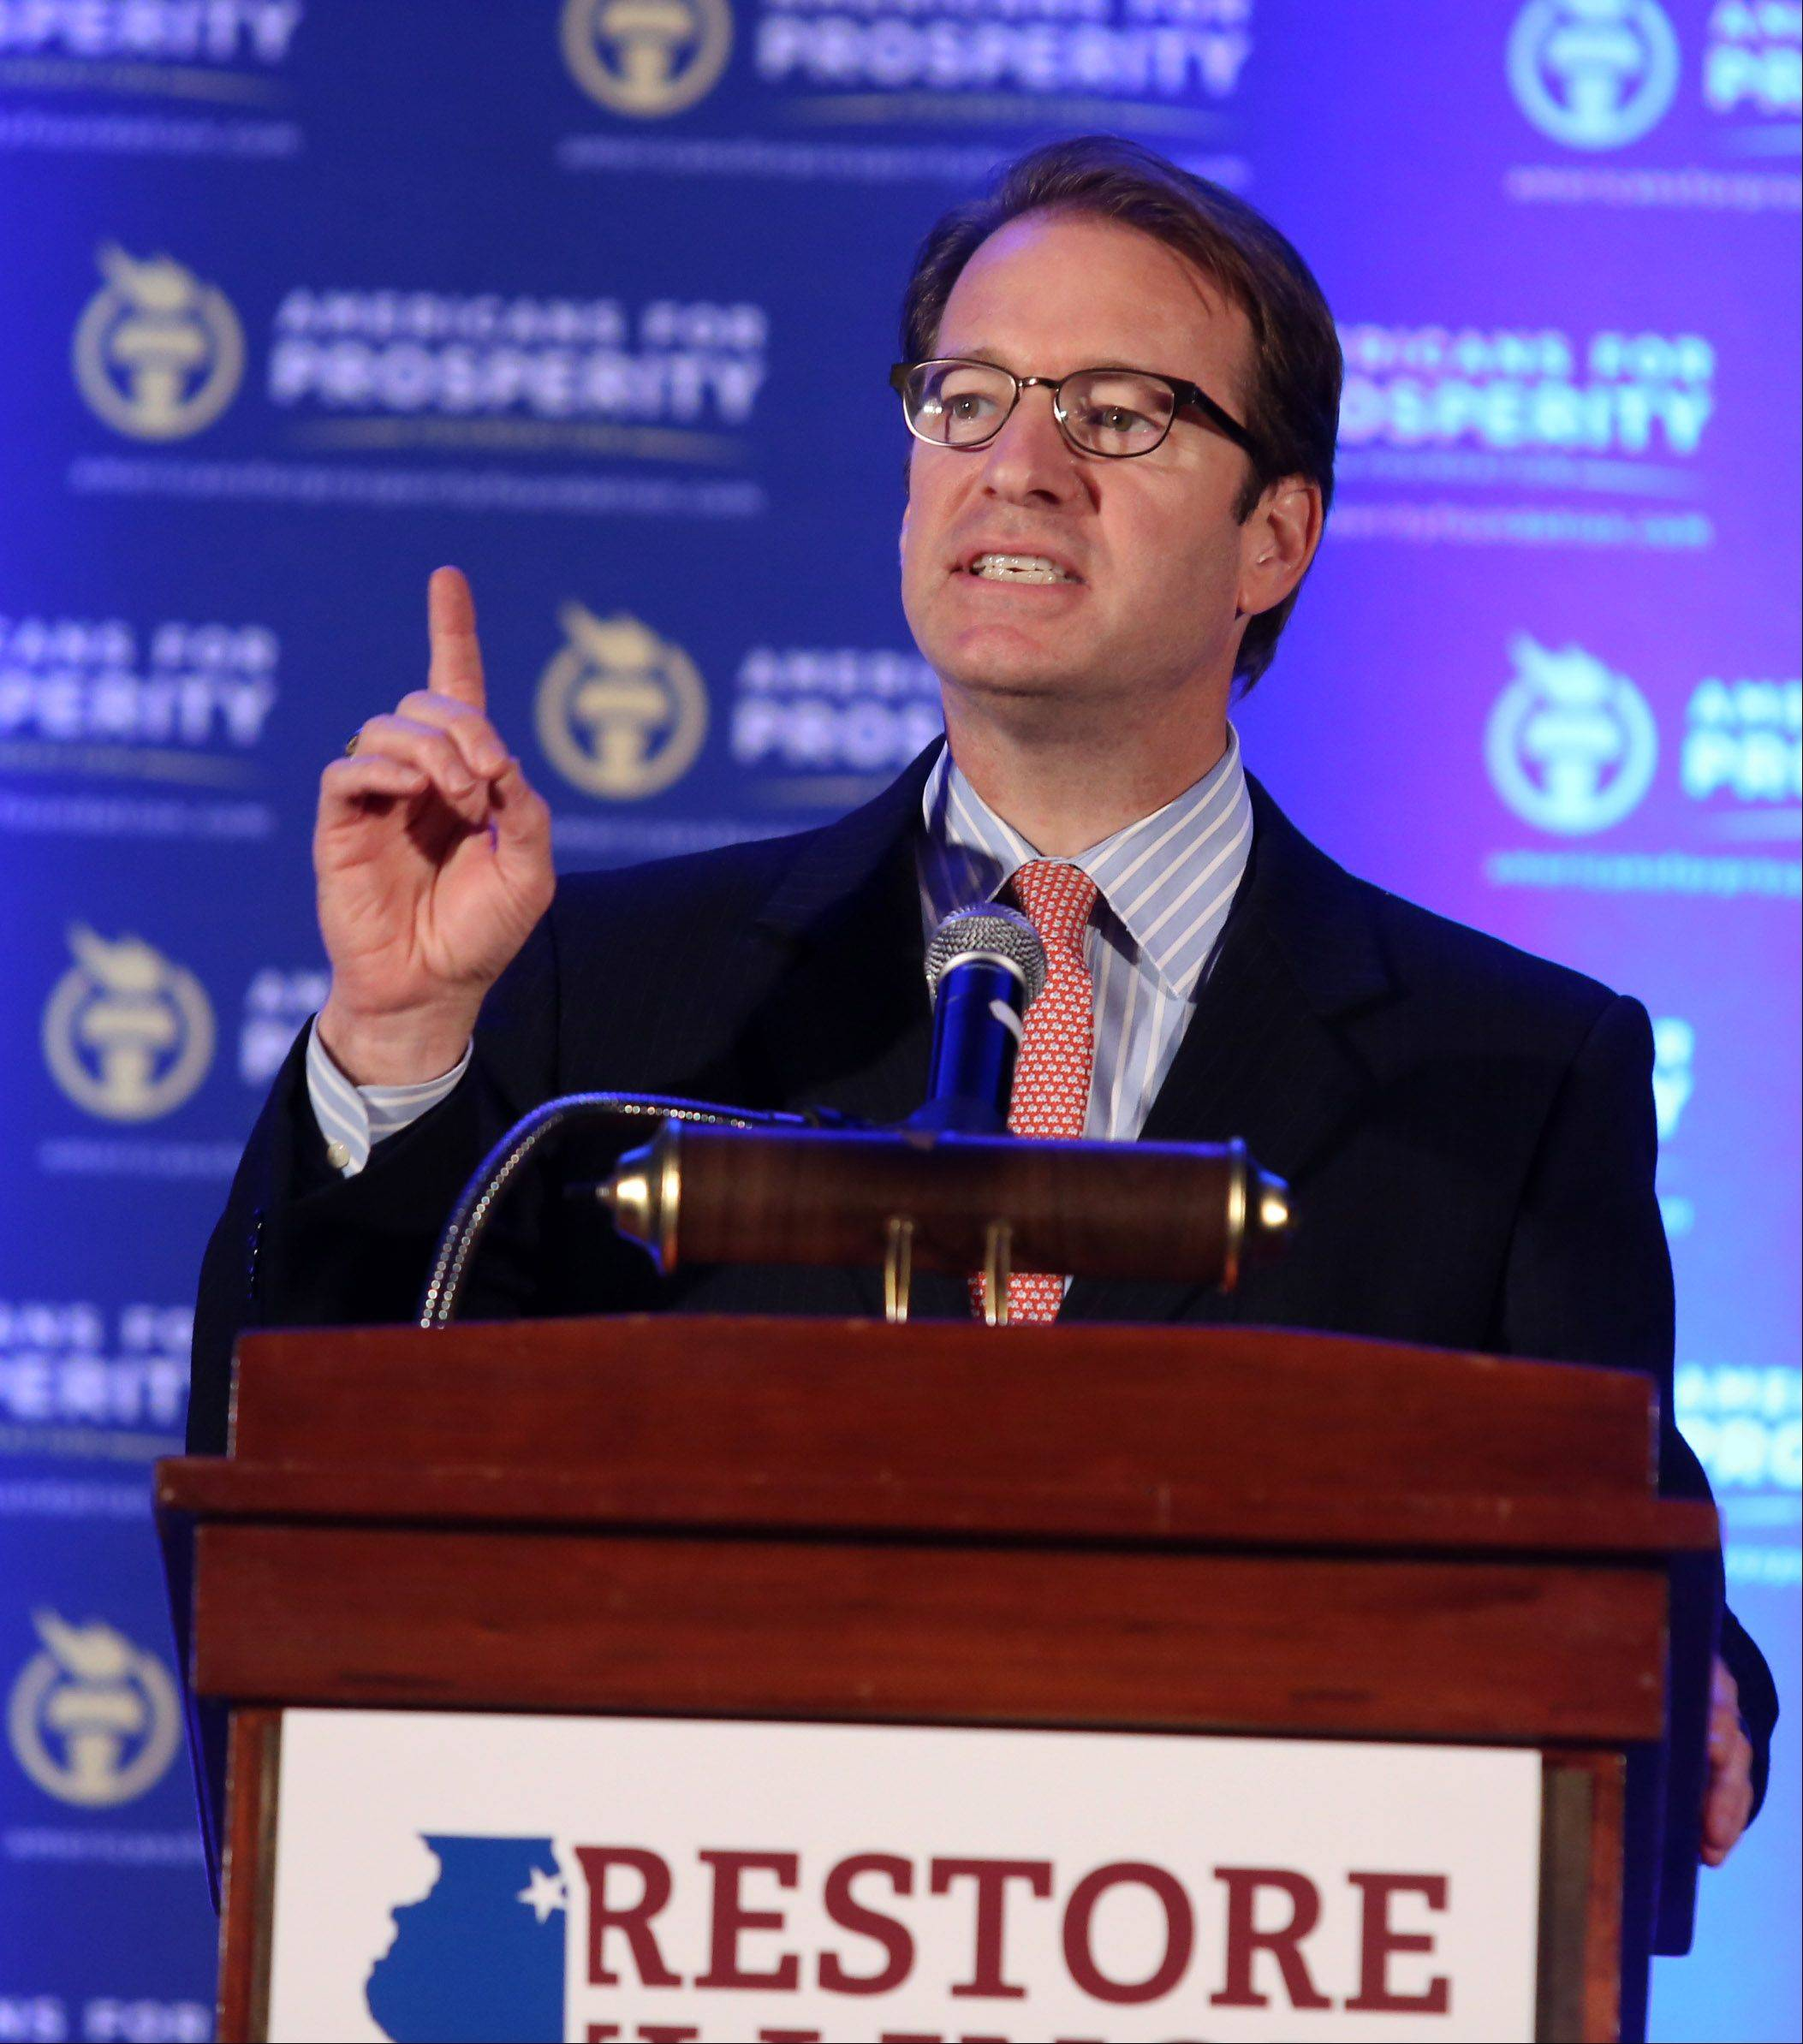 U.S. Rep. Peter Roskam of Wheaton speaks at the conservative Restore Illinois Summit on Saturday at the Stephens Convention Center in Rosemont.